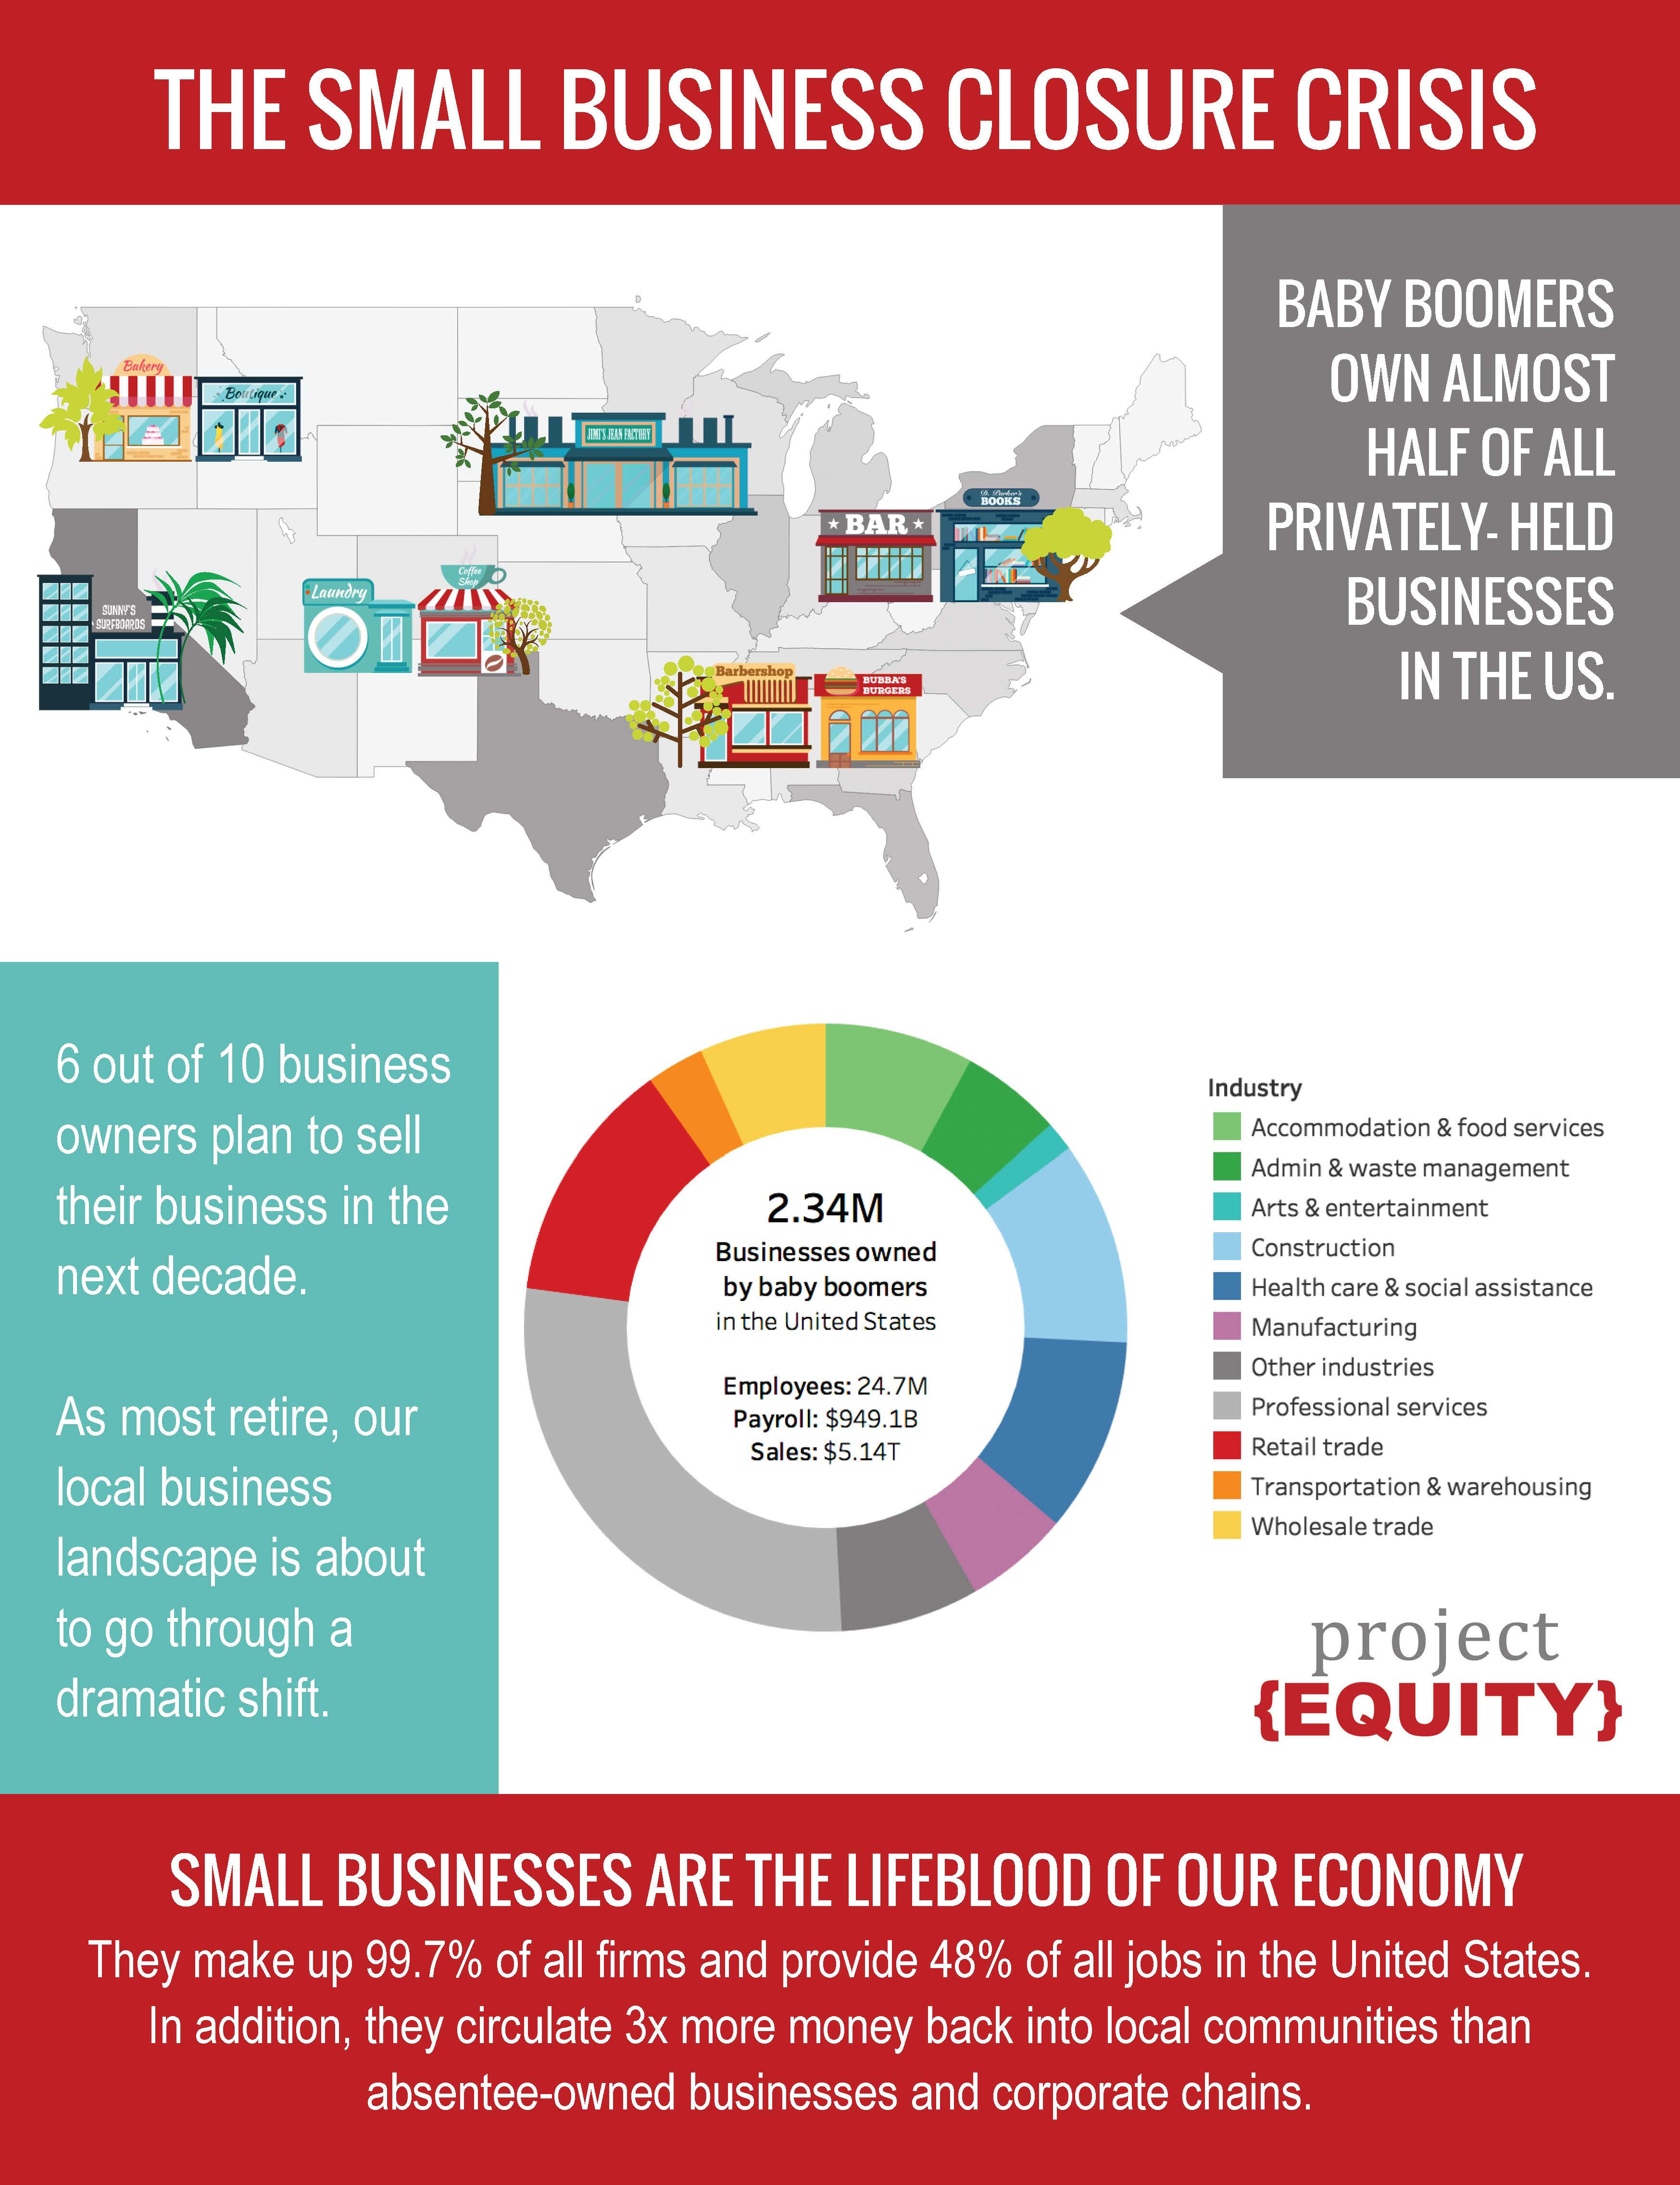 National Small Business Closure Crisis Infographic